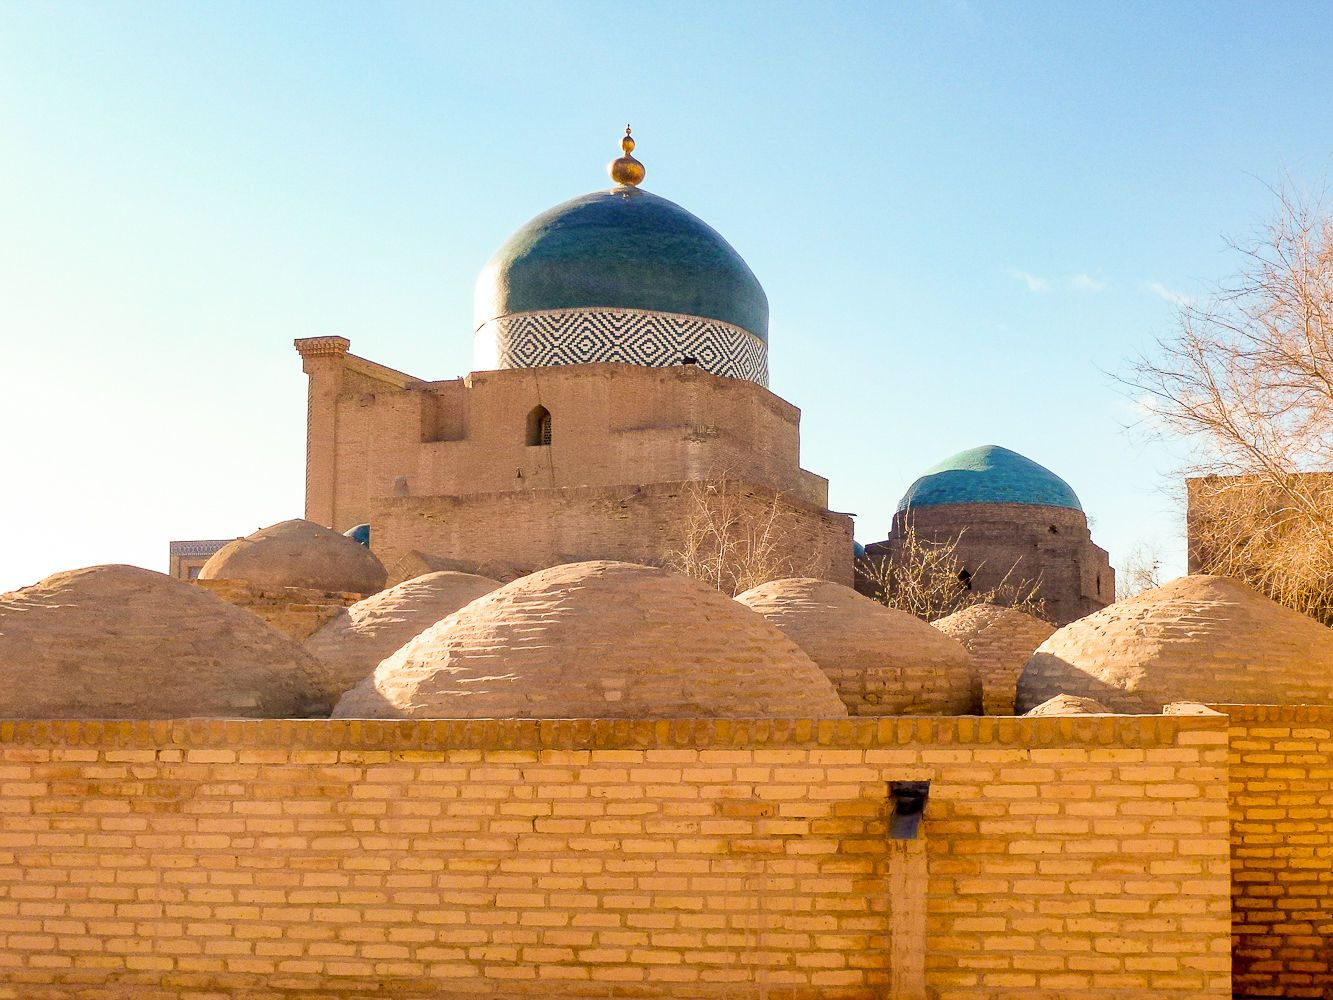 the largest mausoleum in khiva is dedicated to local hero, important cultural monument in Uzbekistan